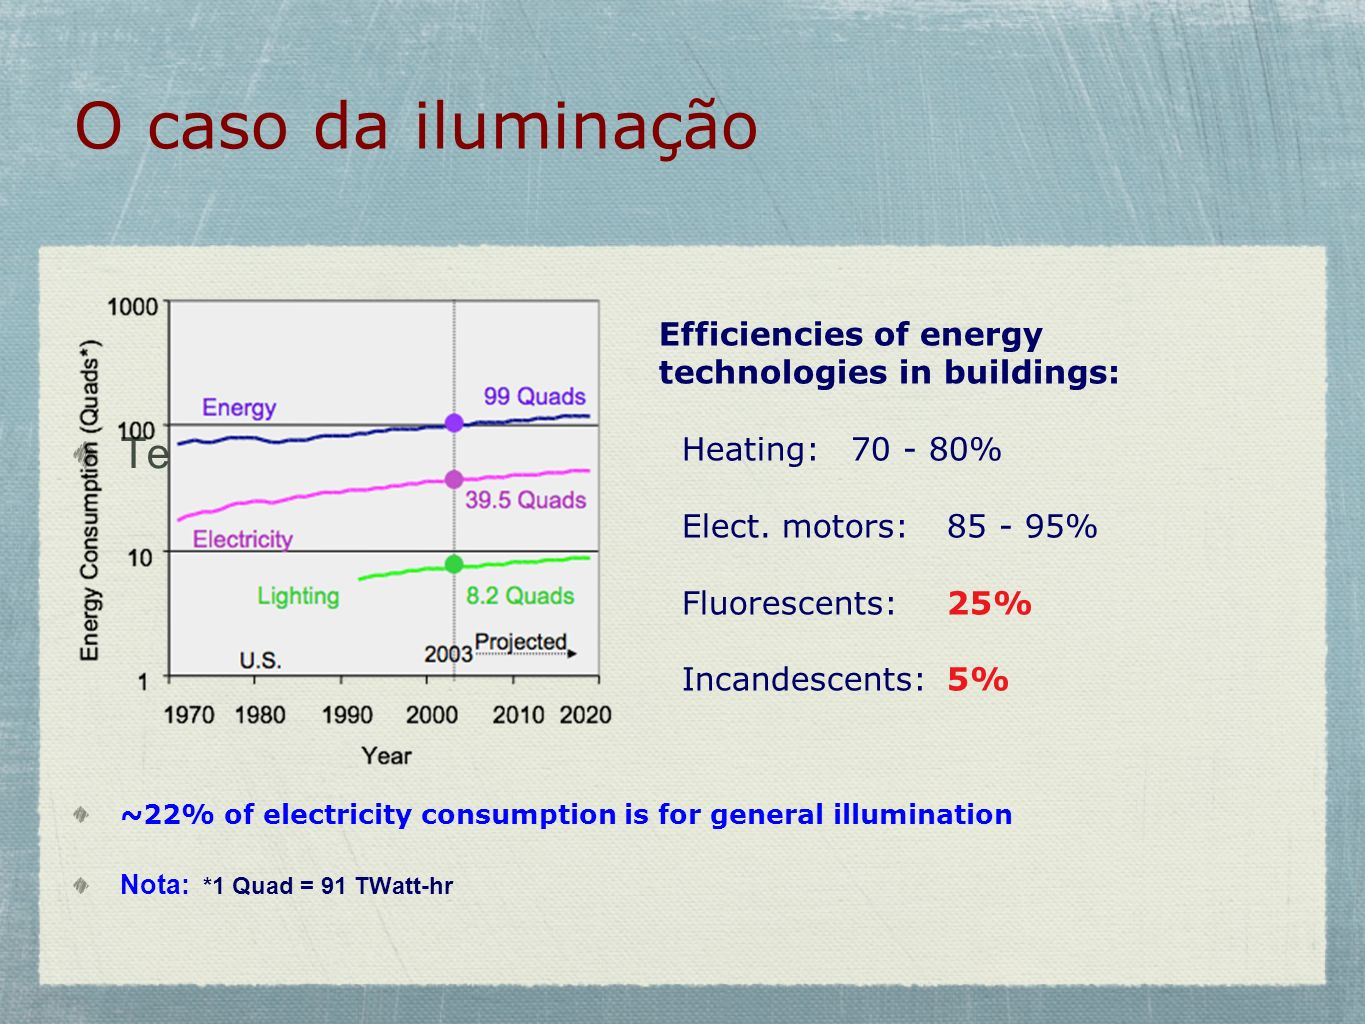 O caso da iluminação Te. ~22% of electricity consumption is for general illumination. Nota: *1 Quad = 91 TWatt-hr.